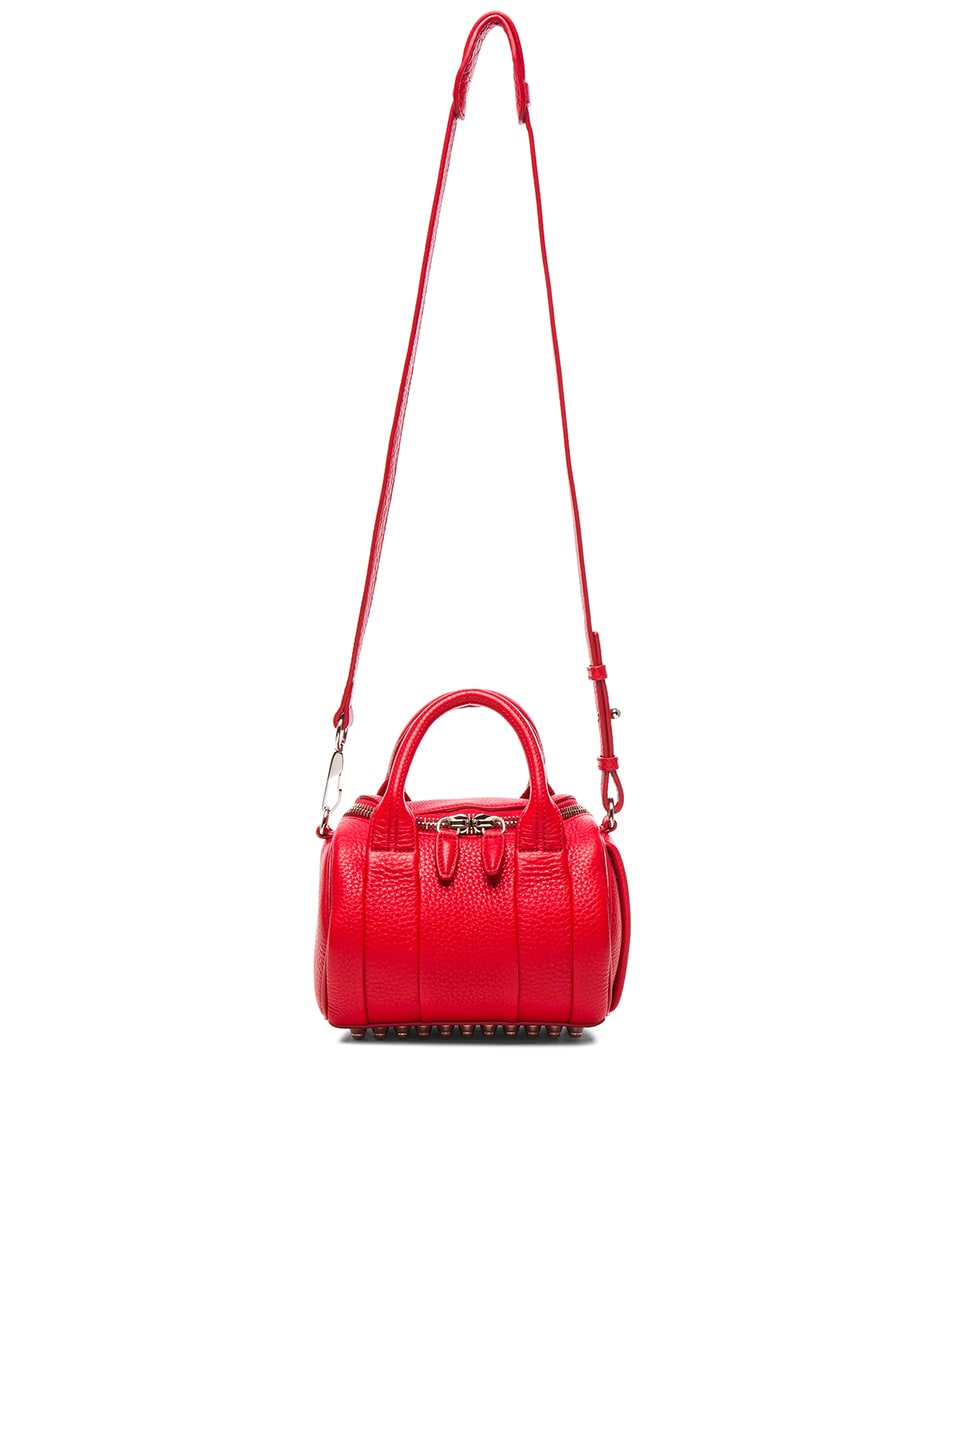 Image 6 of Alexander Wang Mini Rockie Bag with Silver Hardware in Cult